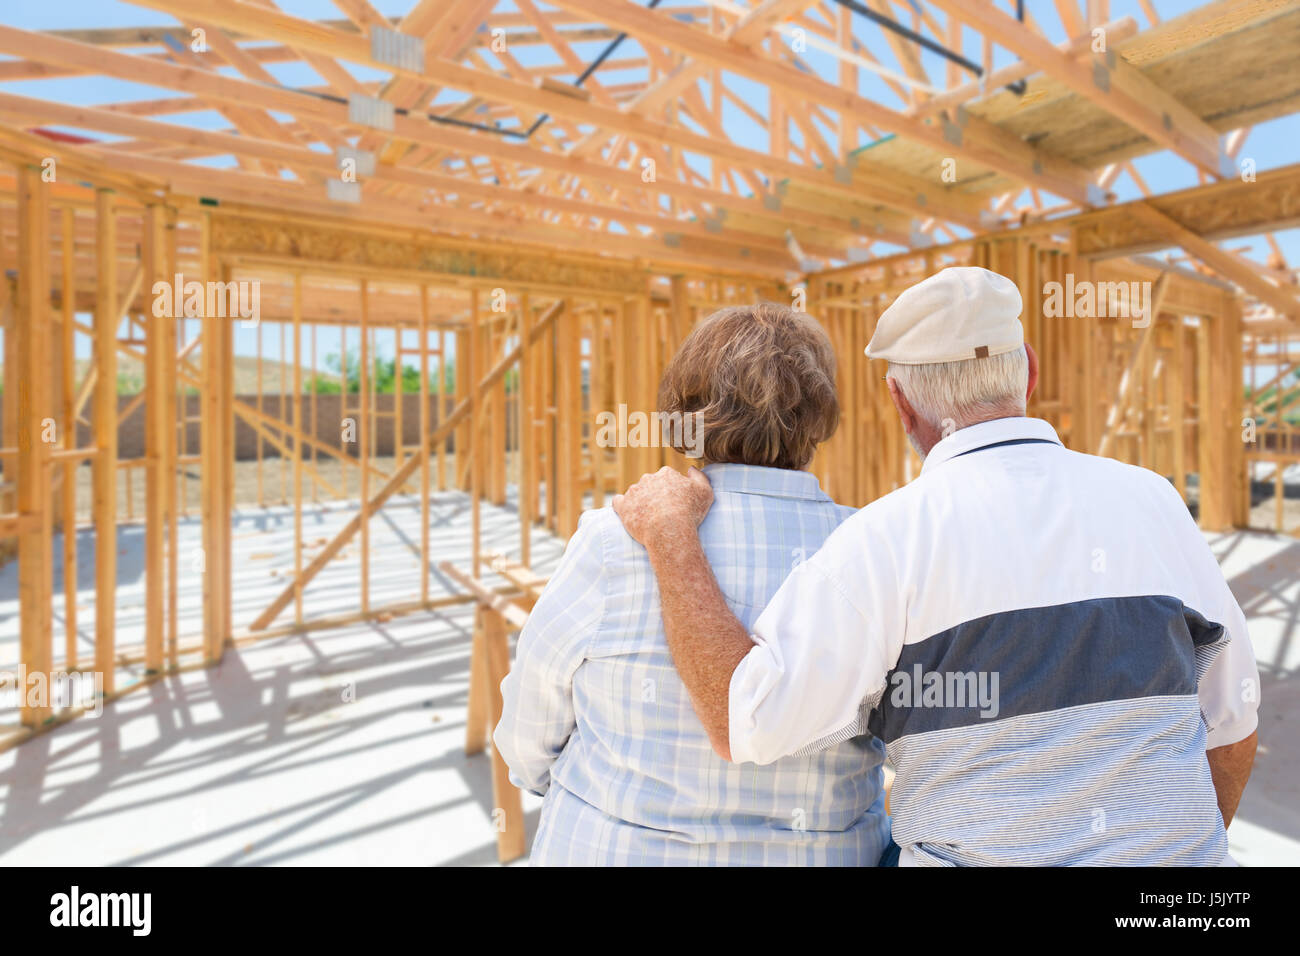 Man Wood Frame Stockfotos & Man Wood Frame Bilder - Seite 26 - Alamy